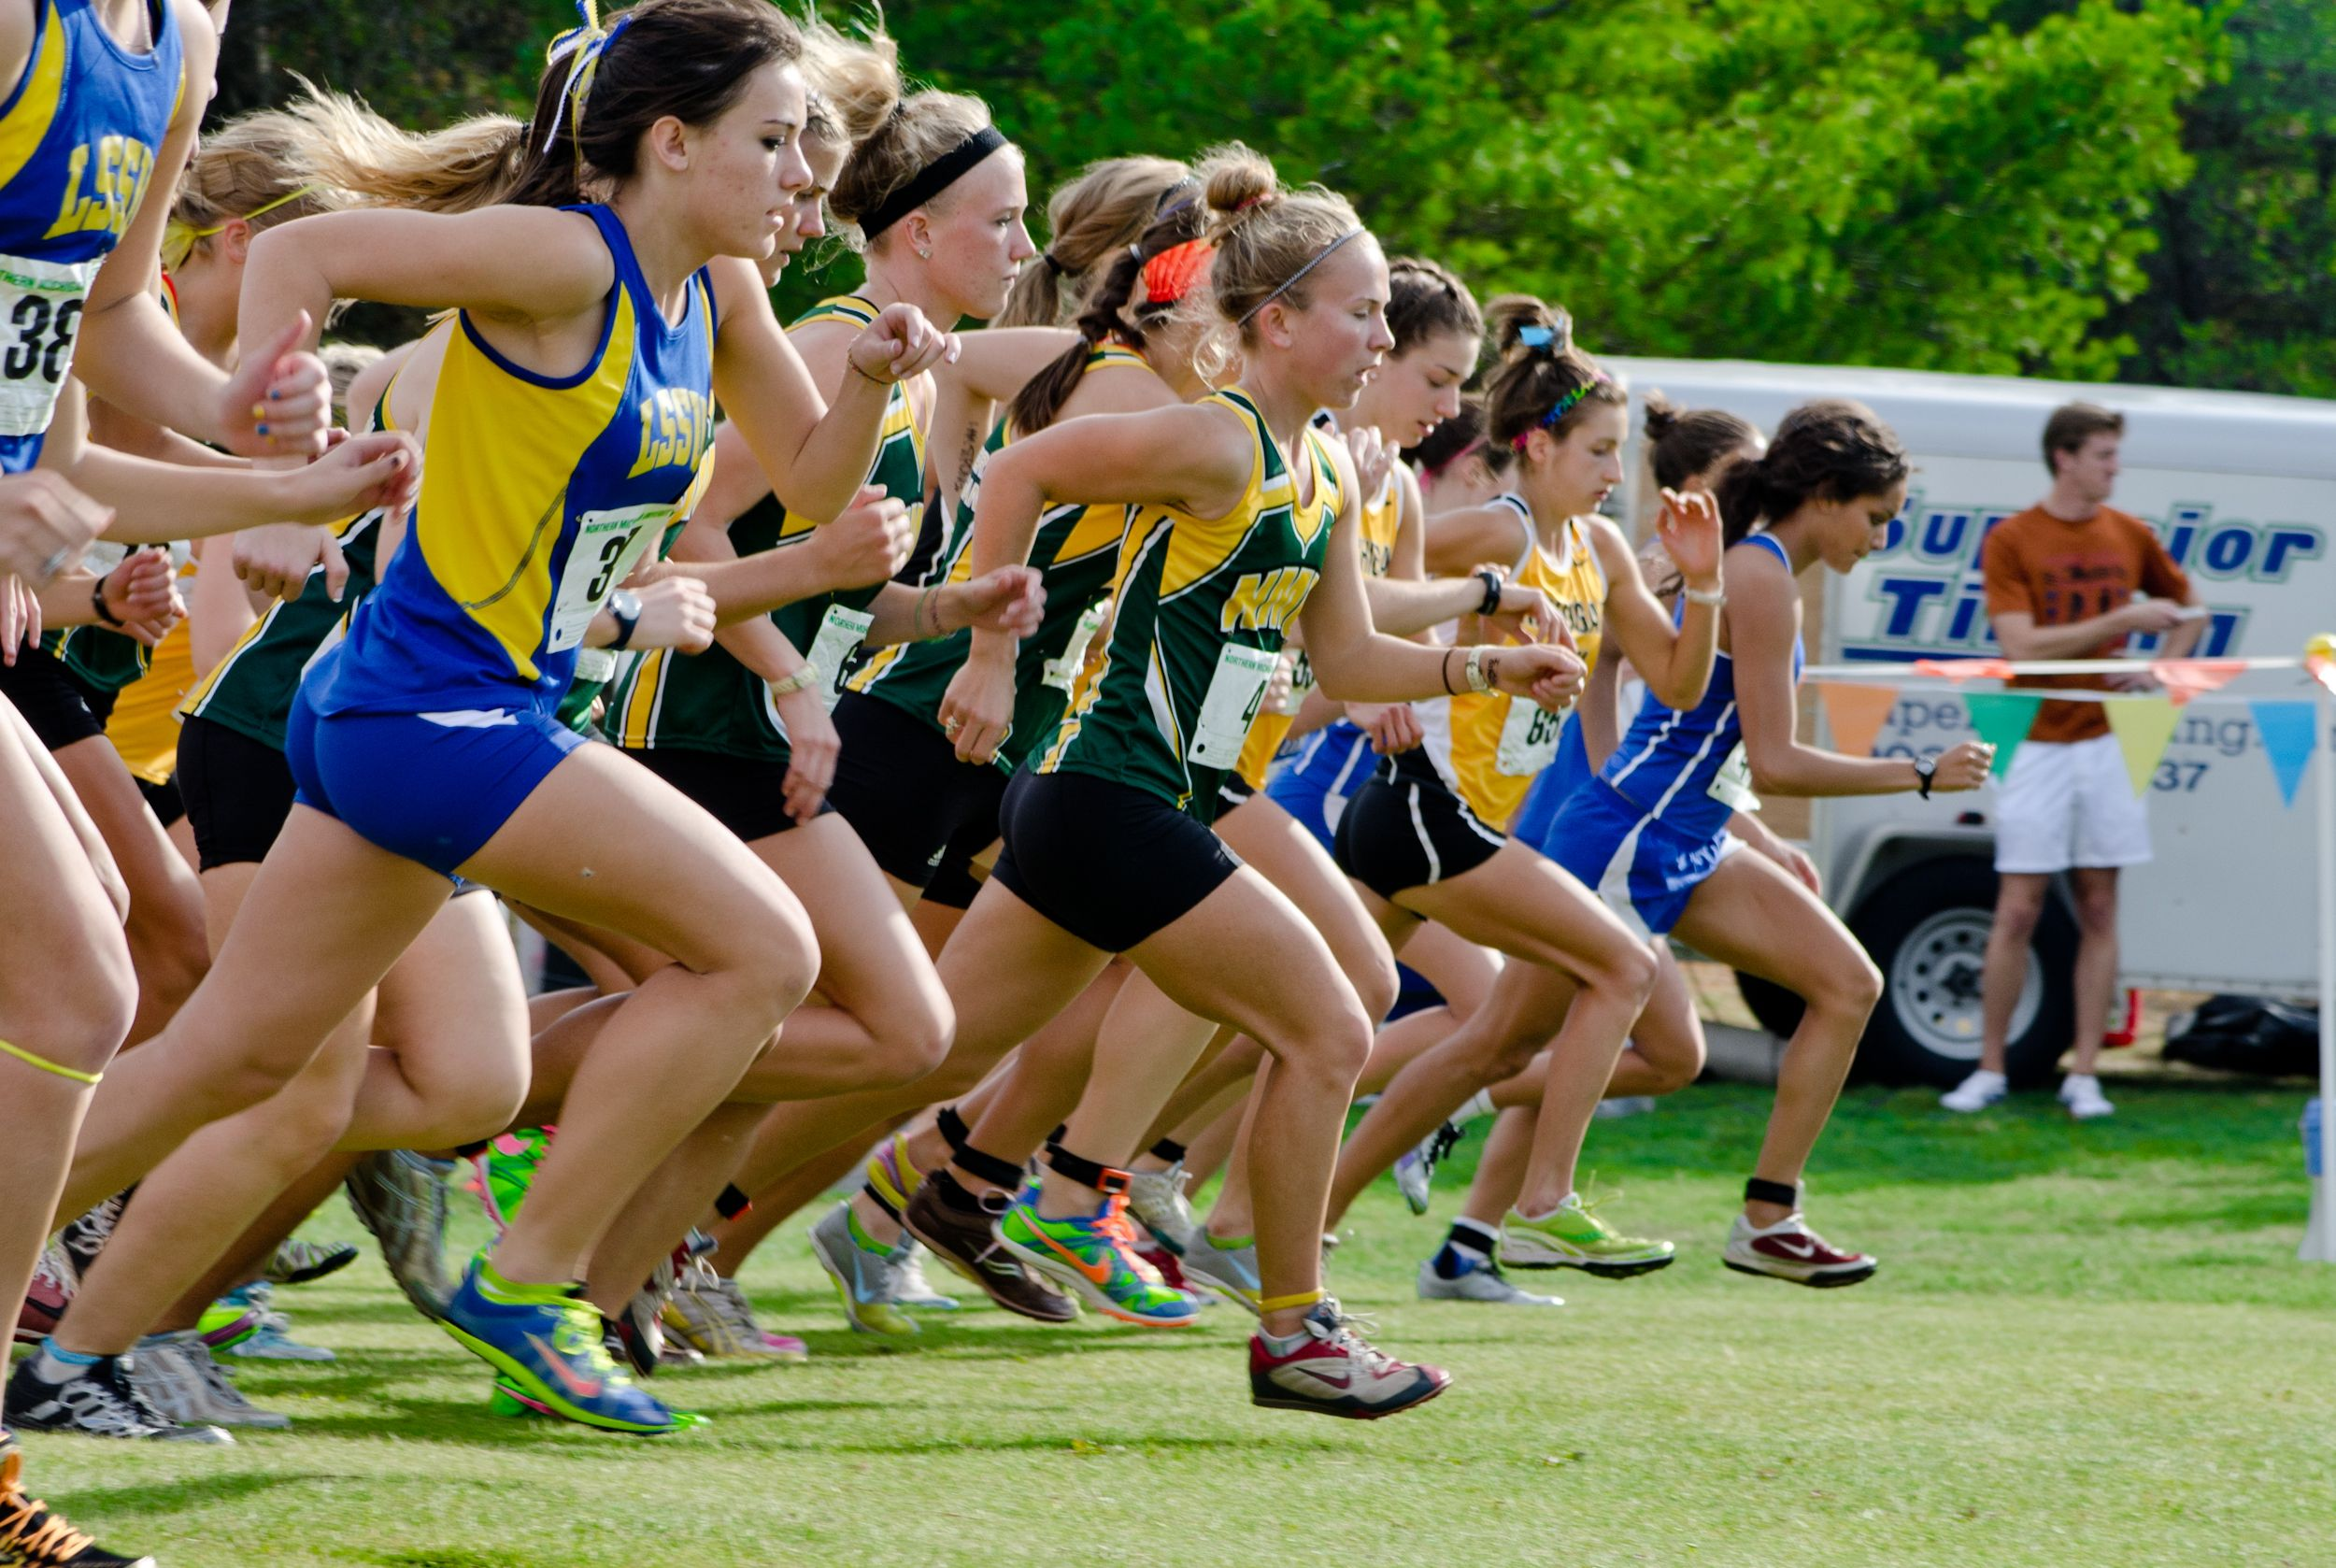 The Women S Cross Country Team Always Fights For Every Inch Led By Head Coach Jenny Ryan Northern Michigan University Sport Event Northern Michigan